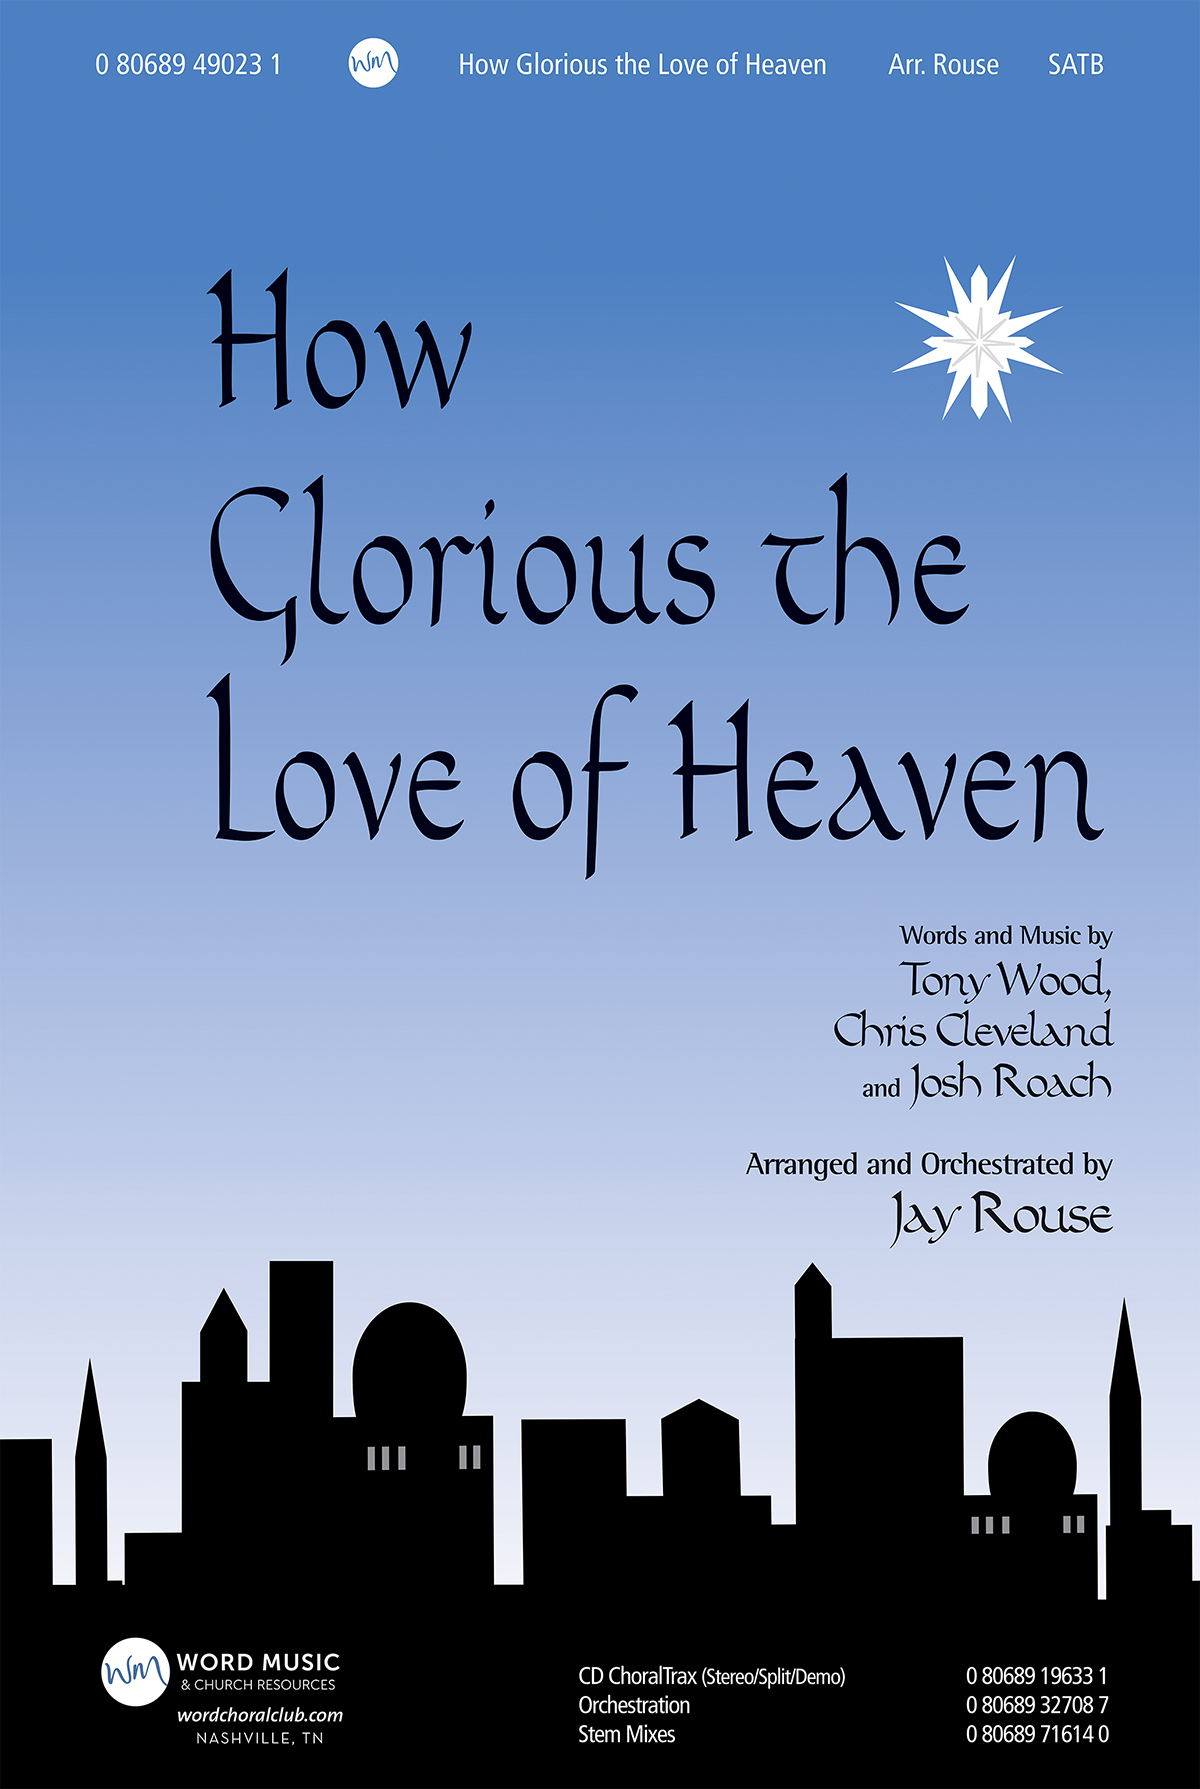 How Glorious the Love of Heaven